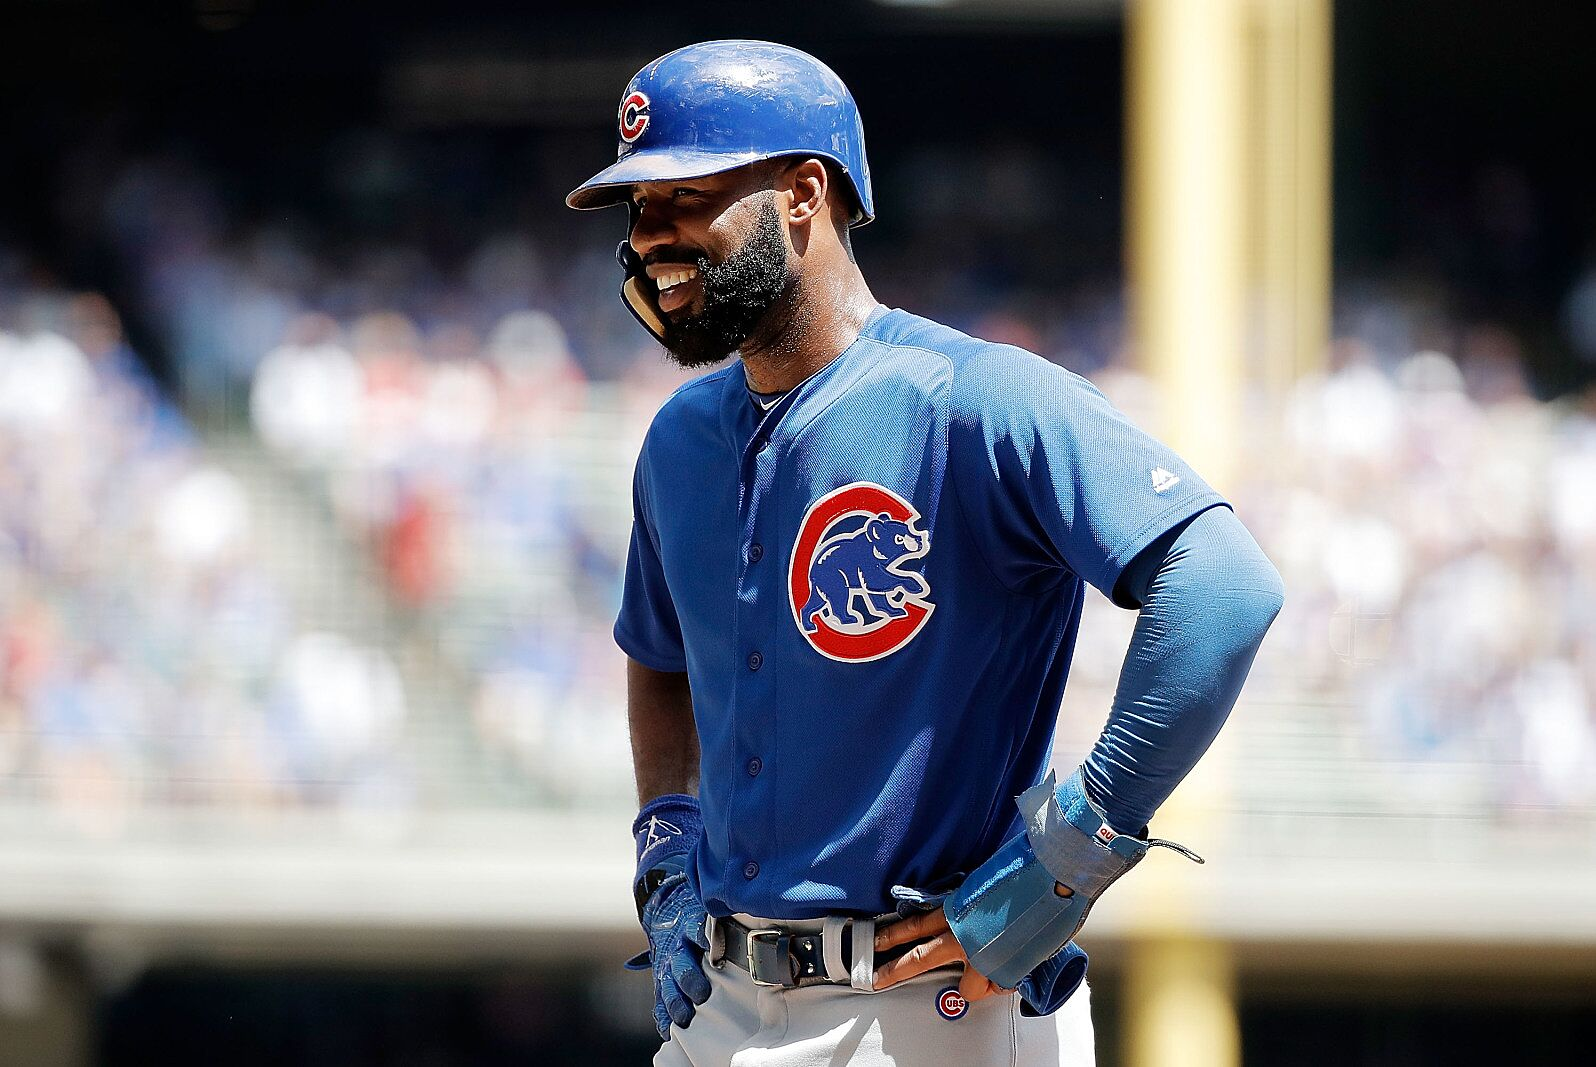 Chicago Cubs, Jason Heyward